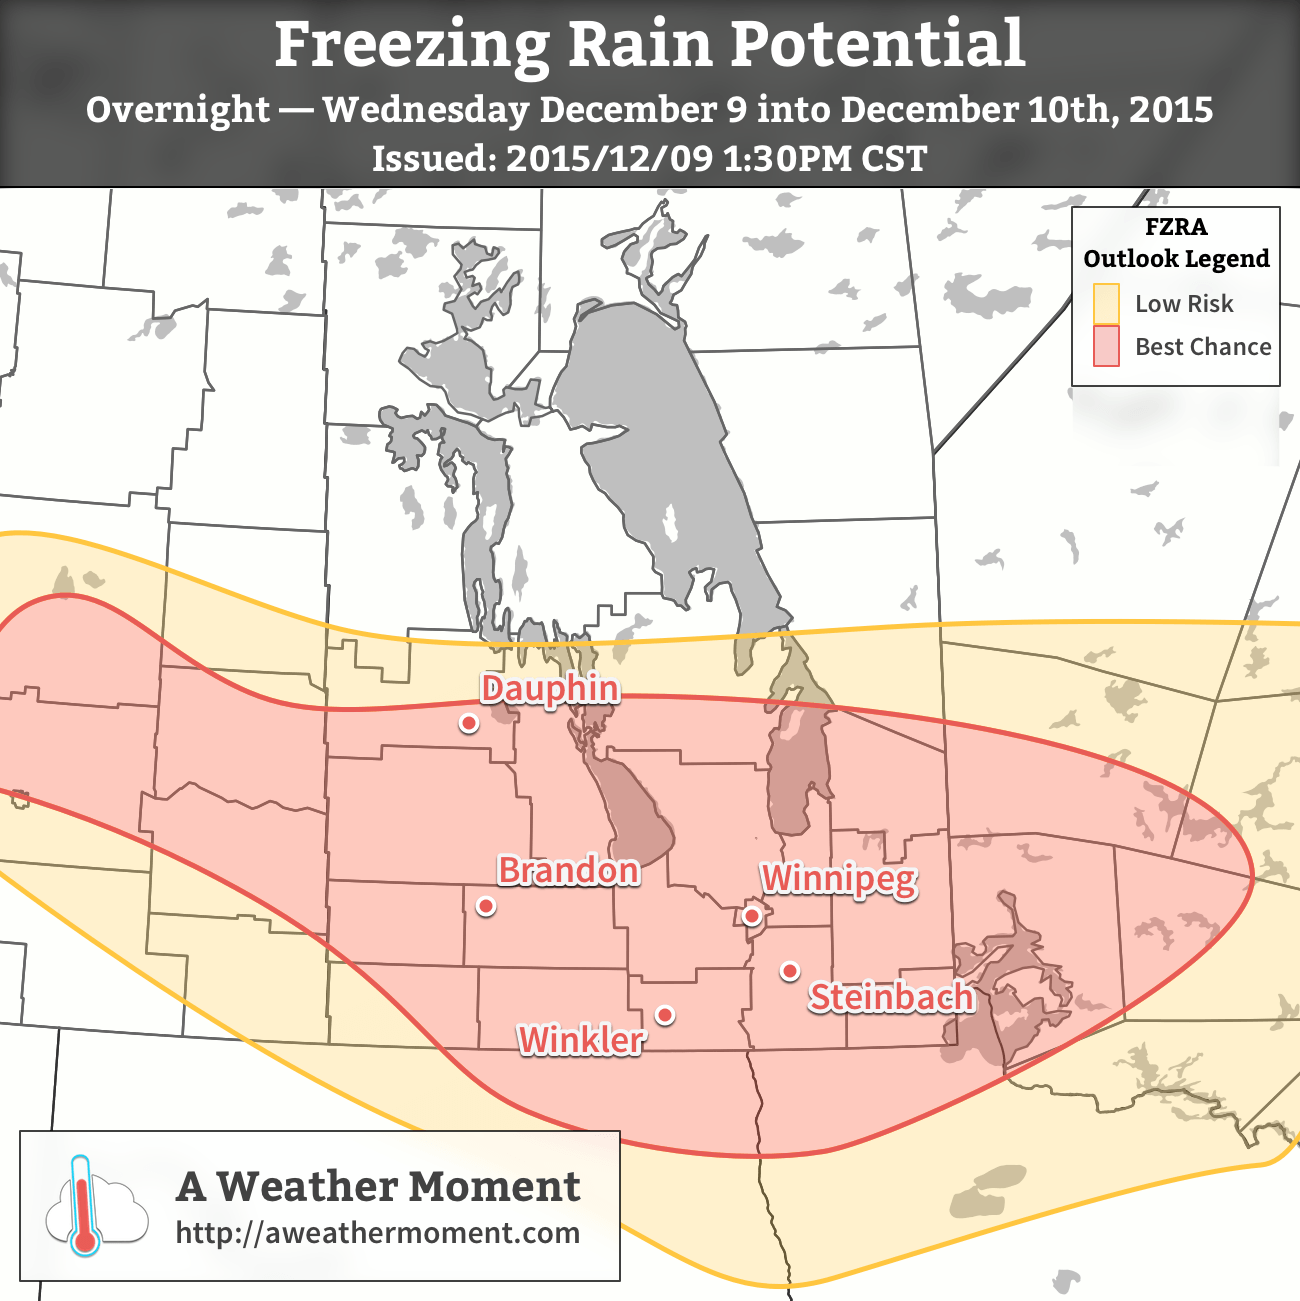 Freezing Rain Potential for December 9-10, 2015